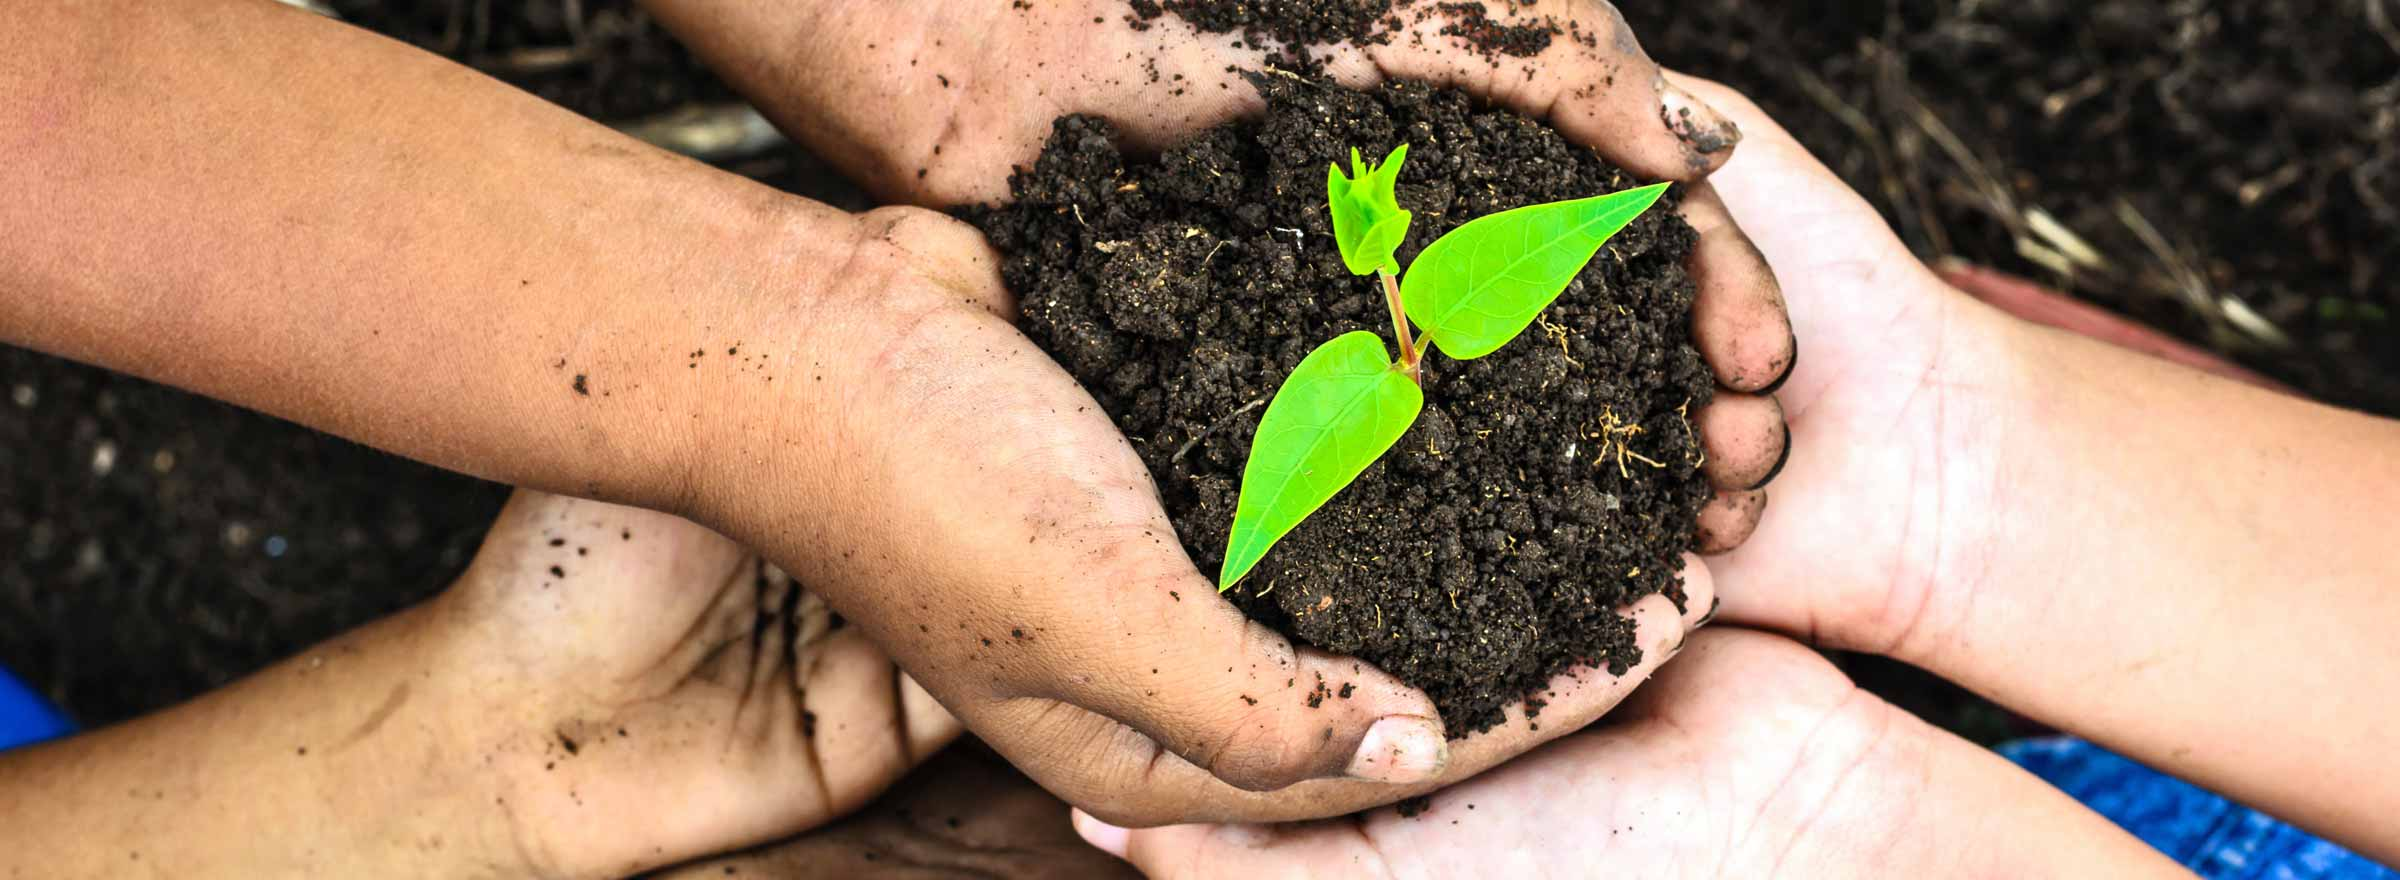 hands holding soil with a young plant